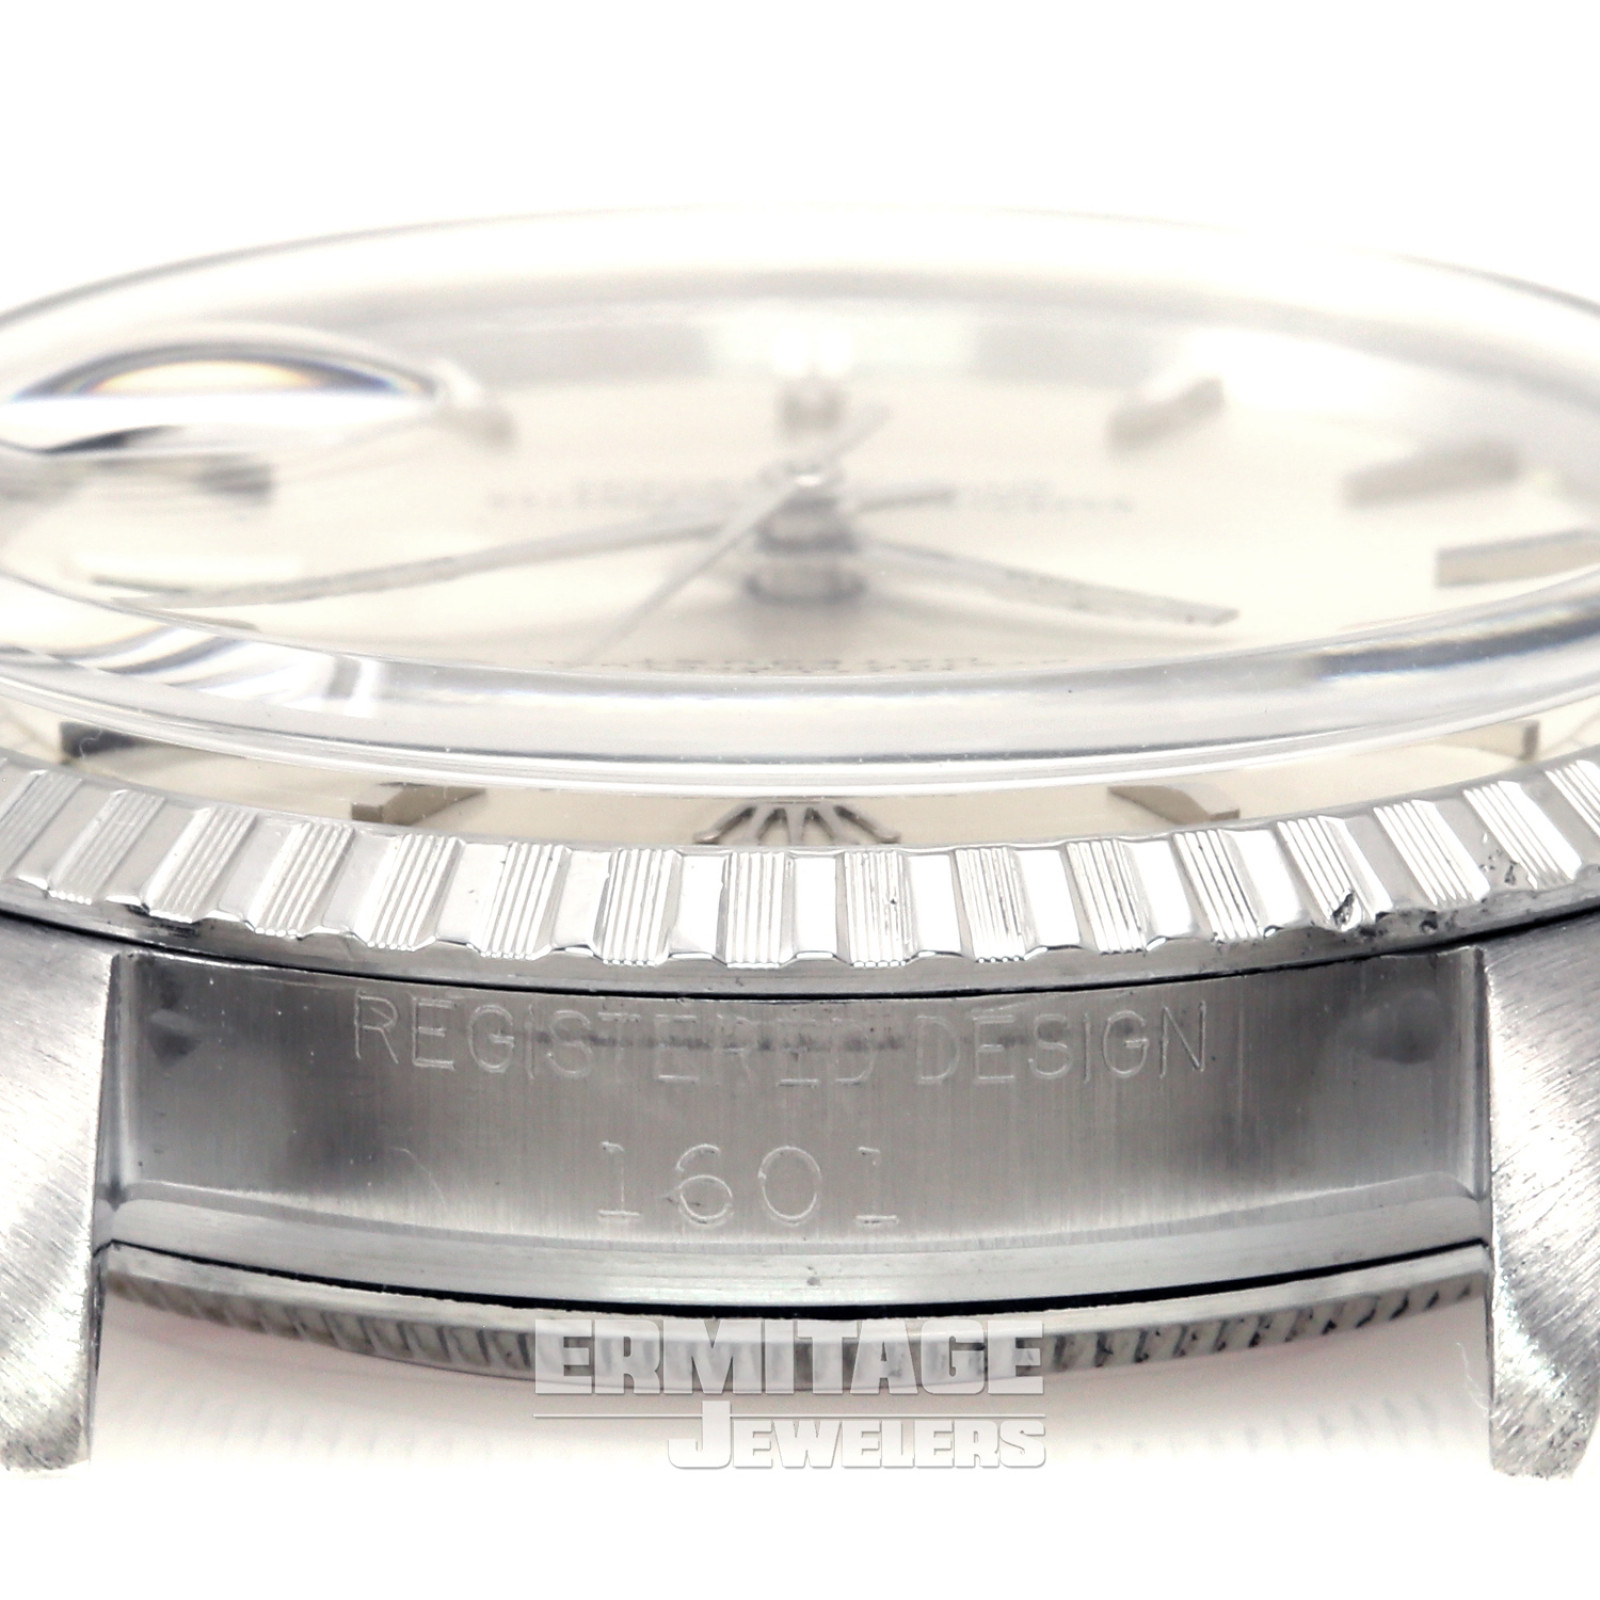 Rolex Datejust 1601 with Silver Dial